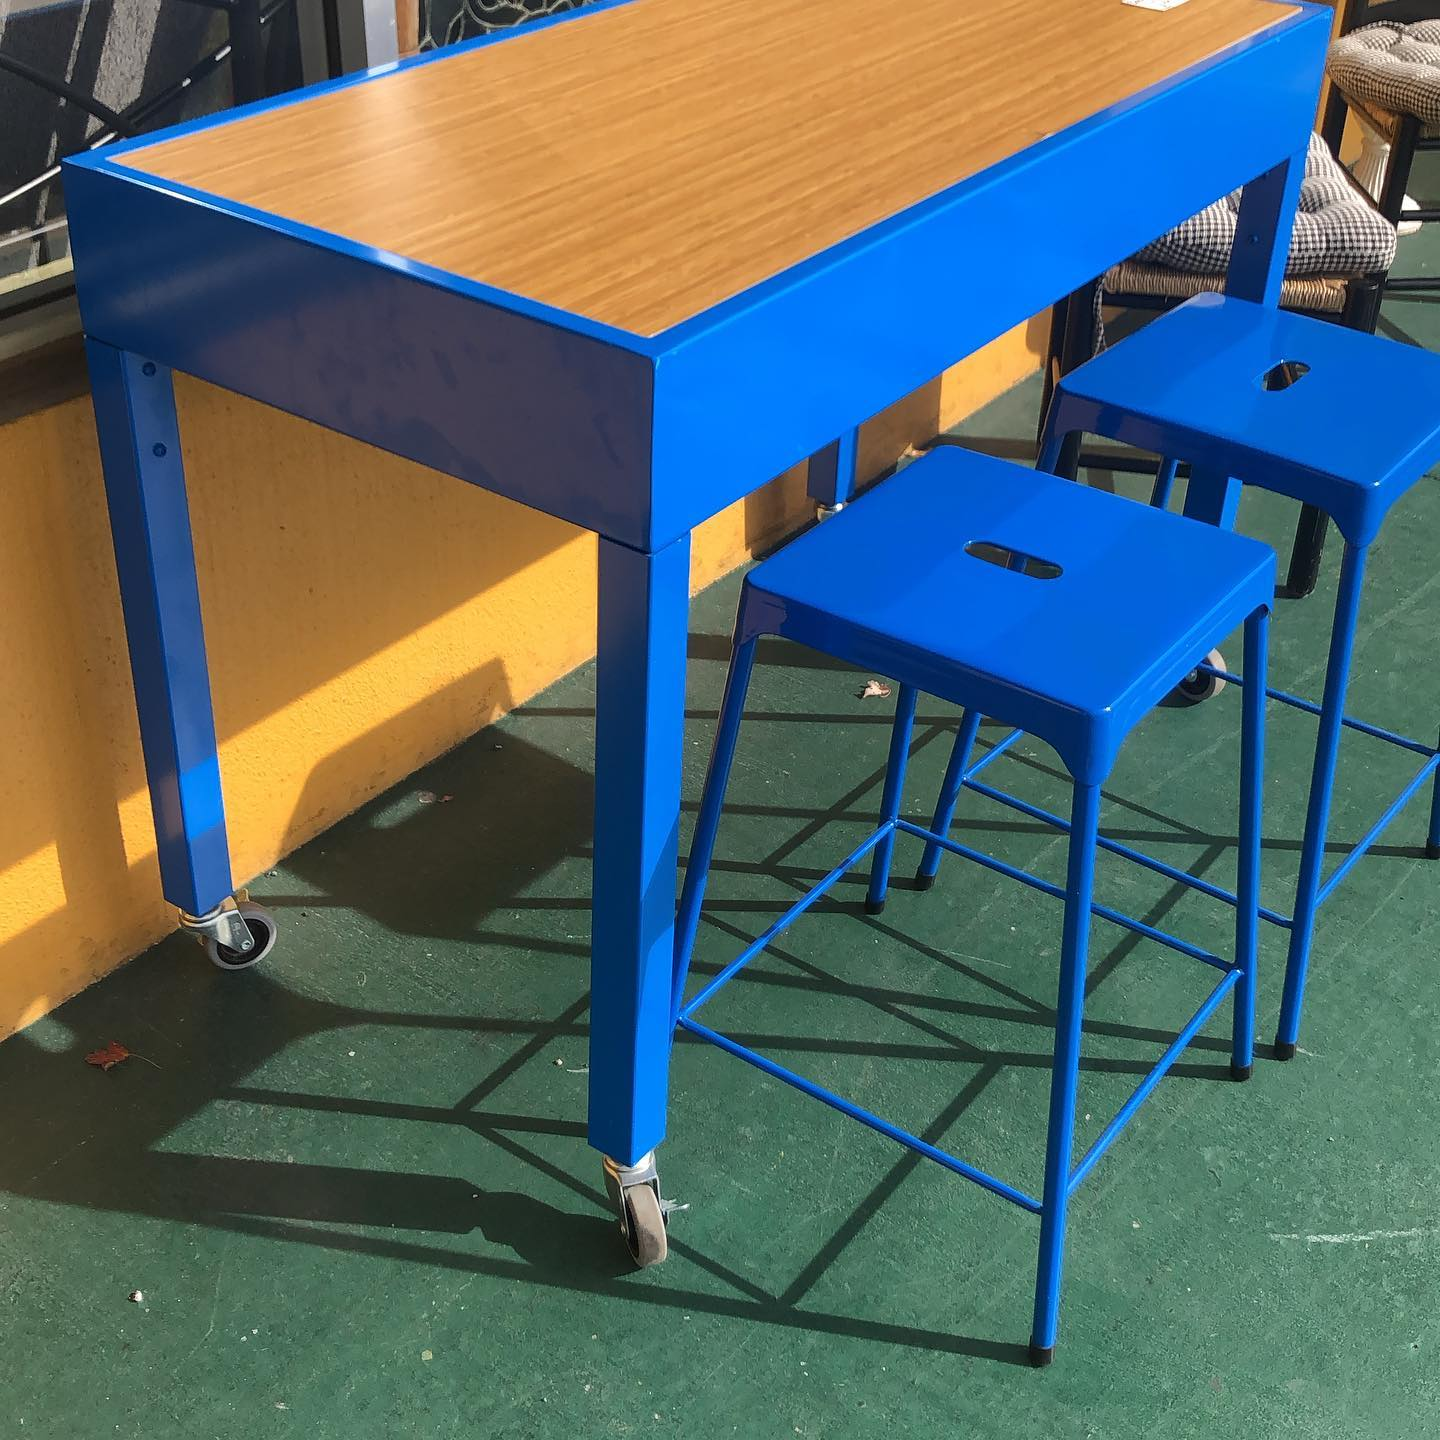 Pier 1 Workbench and stools